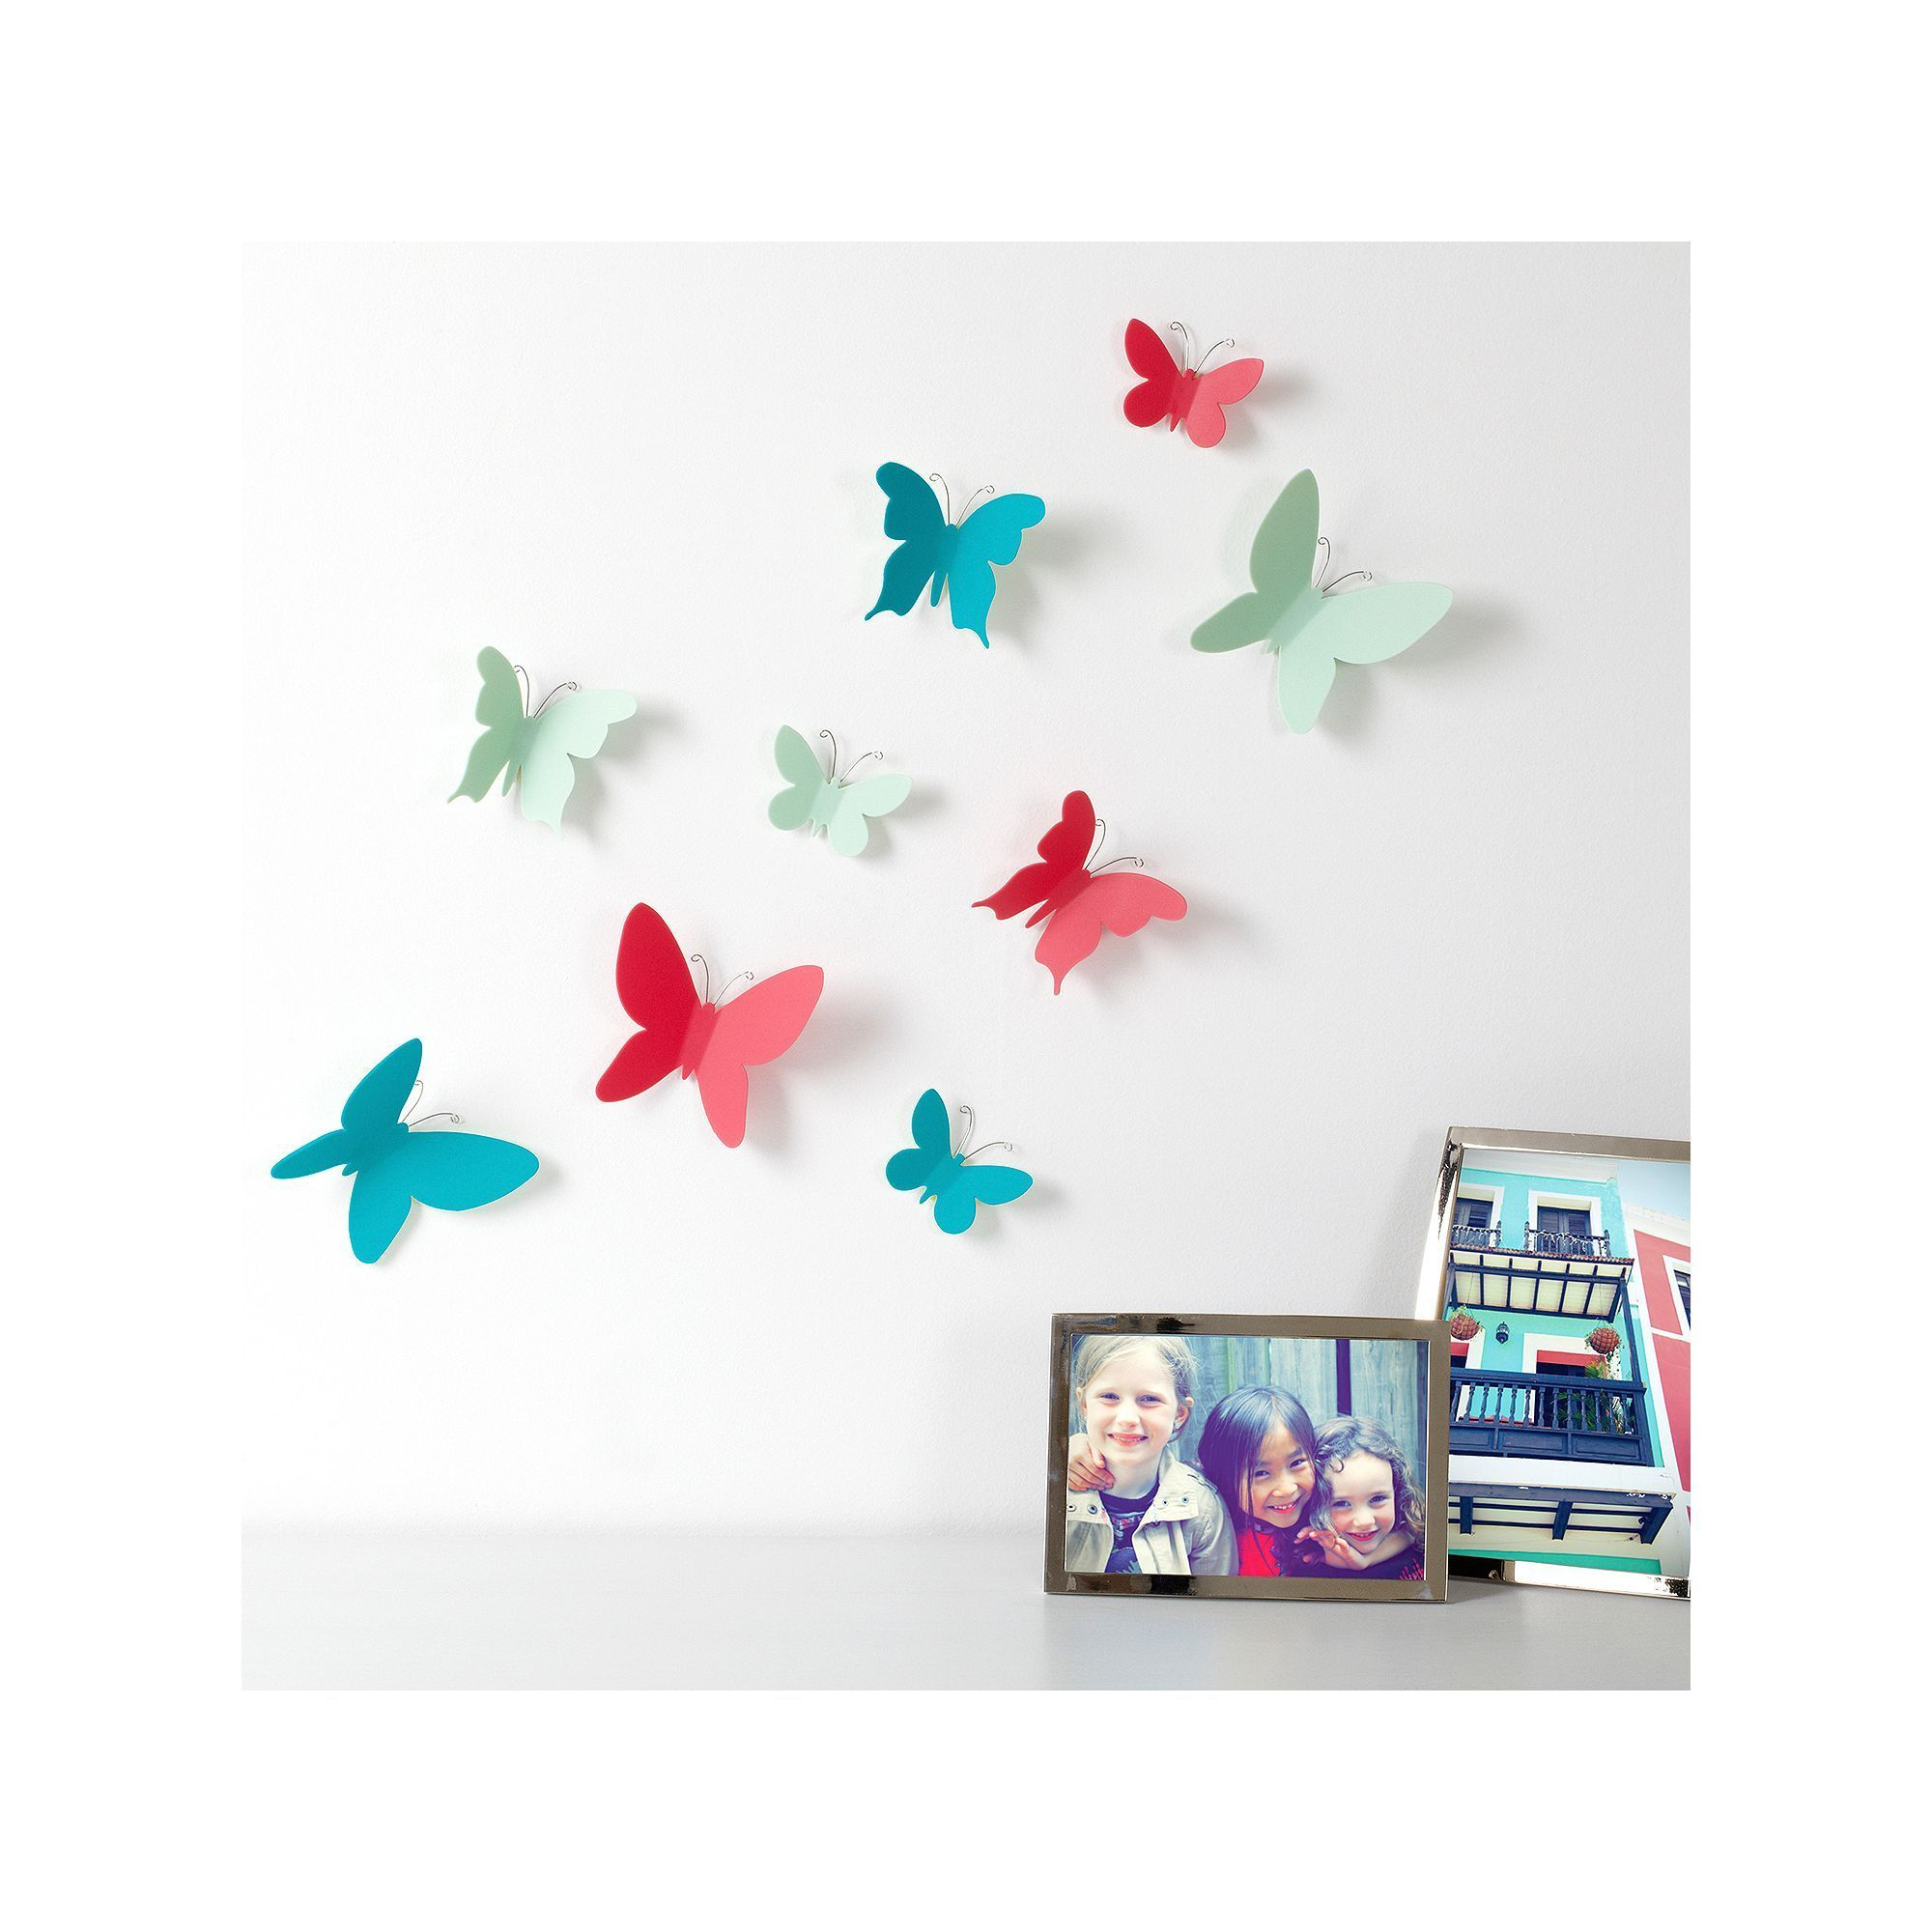 Umbra Mariposa Vibrant Butterfly Wall Decor | Products with regard to Mariposa 9 Piece Wall Decor (Image 26 of 30)